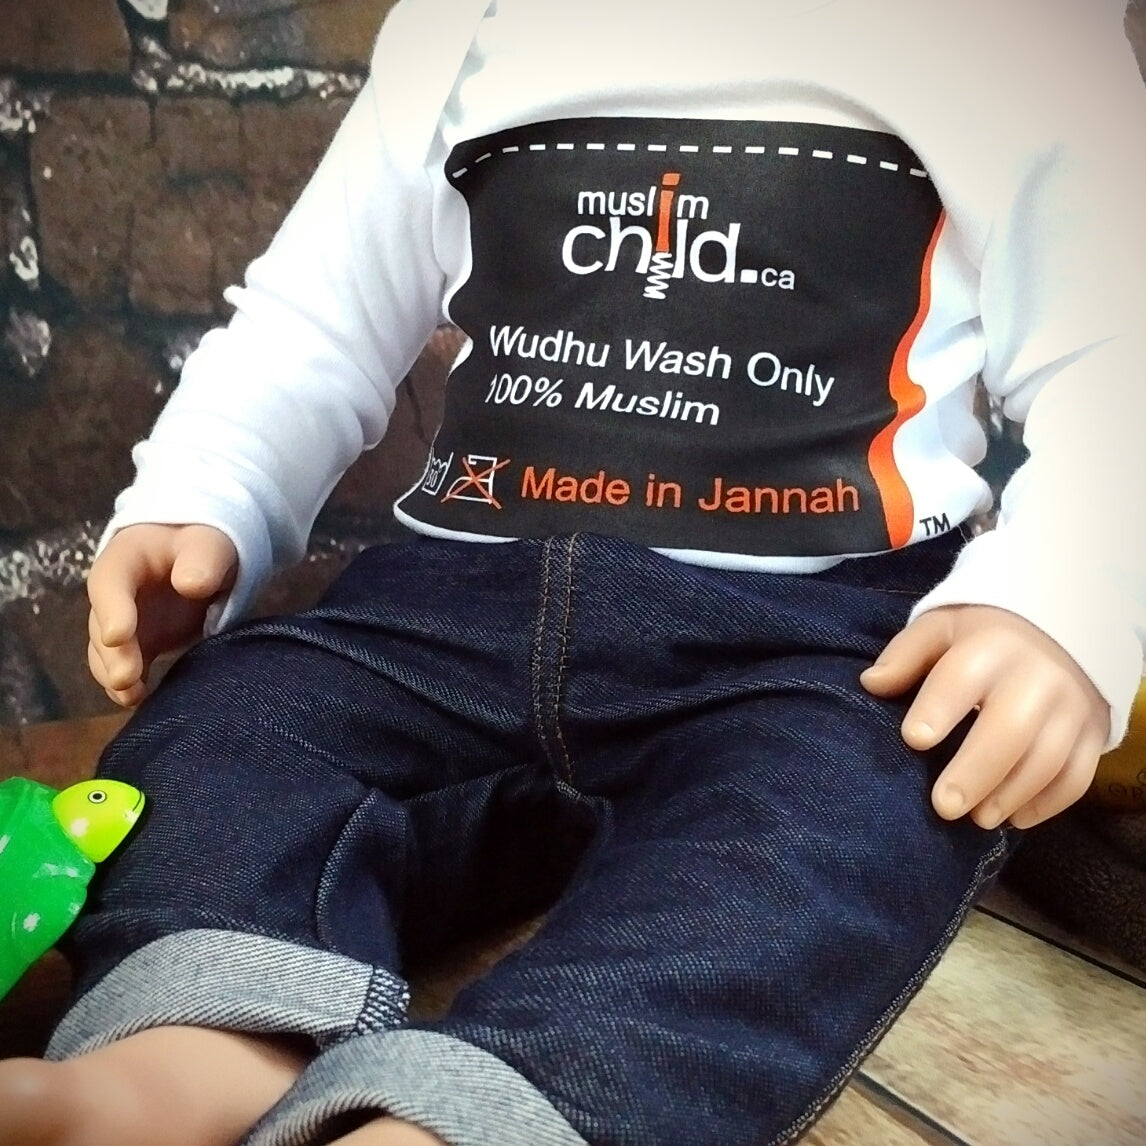 Muslim Child - Wudhu Wash - Made In Jannah™ Clothes Tag – Long Sleeve Onesie  MuslimChild.ca Muslim baby clothes for ages 3 months to 14 years old. Funny tshirts, funny onesies, sleepers and onesies. Muslim children's appeal, Islamic wear, Muslim parents, Muslim Children.